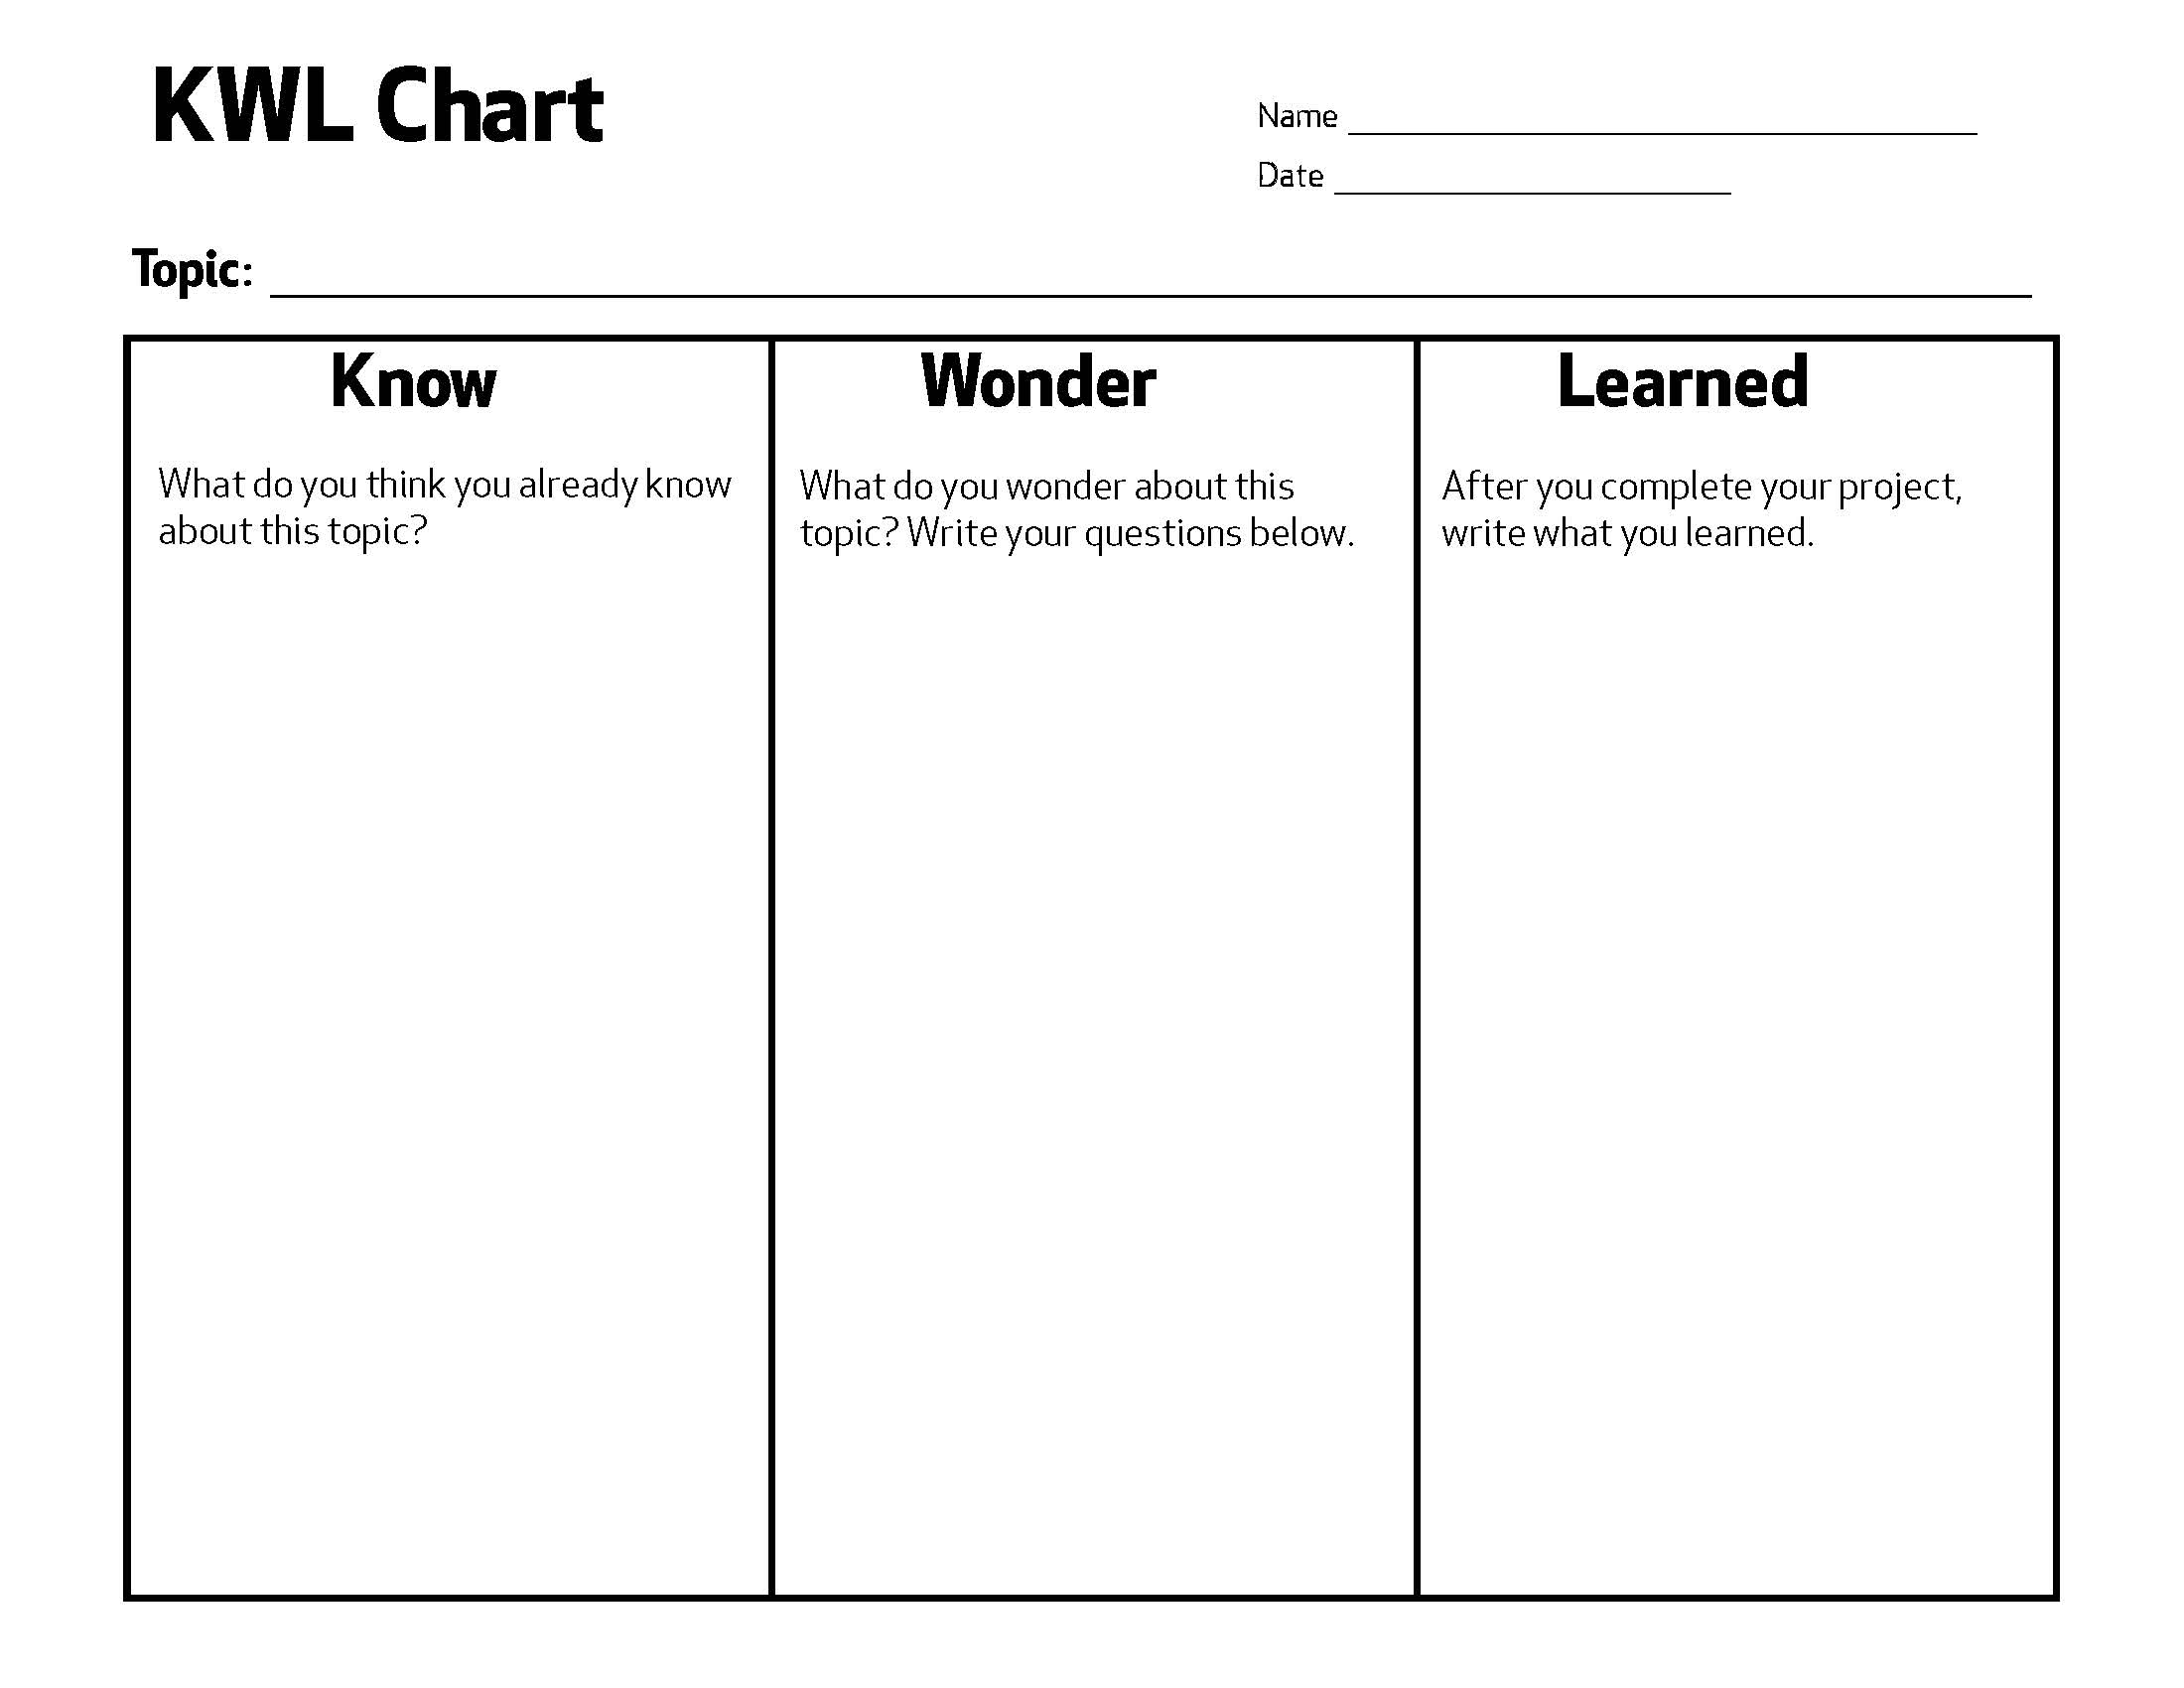 picture about Kwl Chart Printable titled History:KWL Chart.jpg - Wikimedia Commons